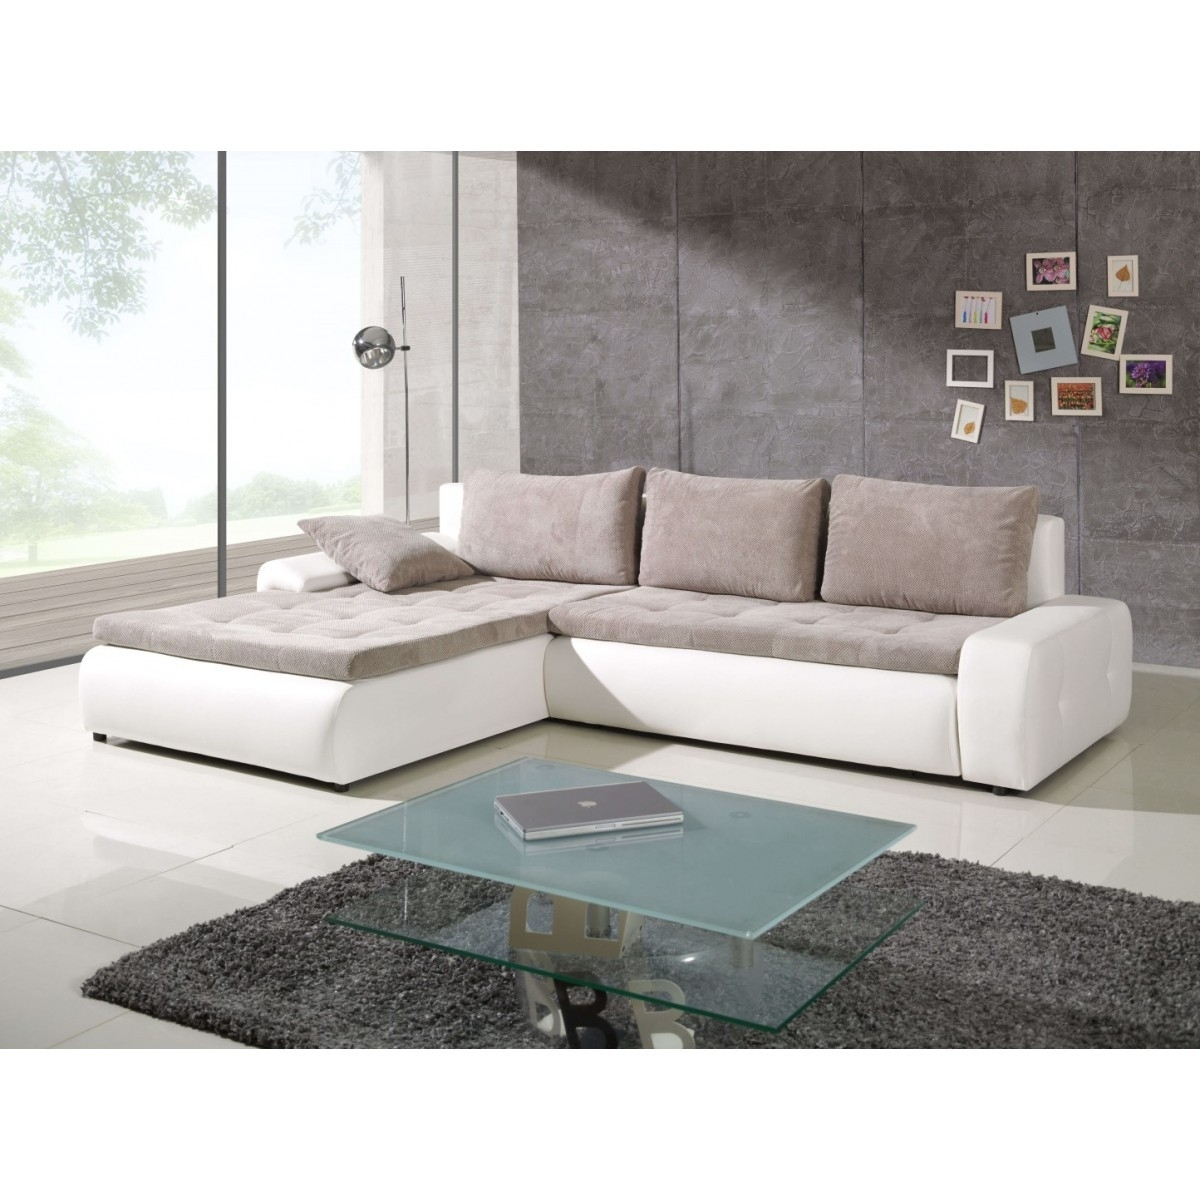 Galileo Universal Sectional Sofa Sleeper With Storagecreative Intended For Nashua Nh Sectional Sofas (Image 3 of 10)